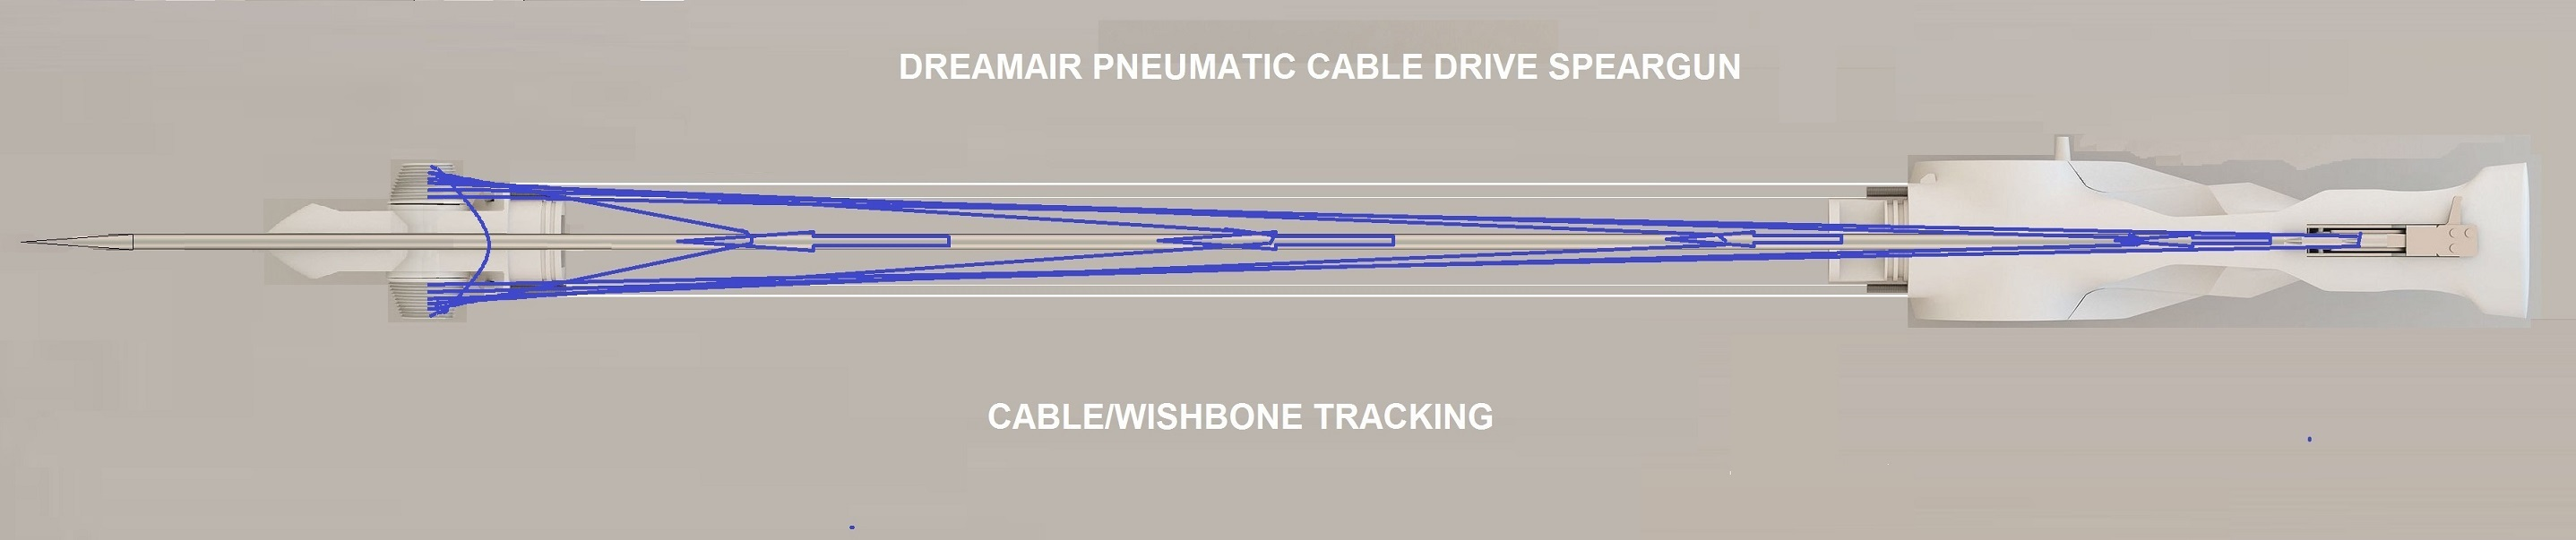 Dreamair wishbone track template BR.jpg